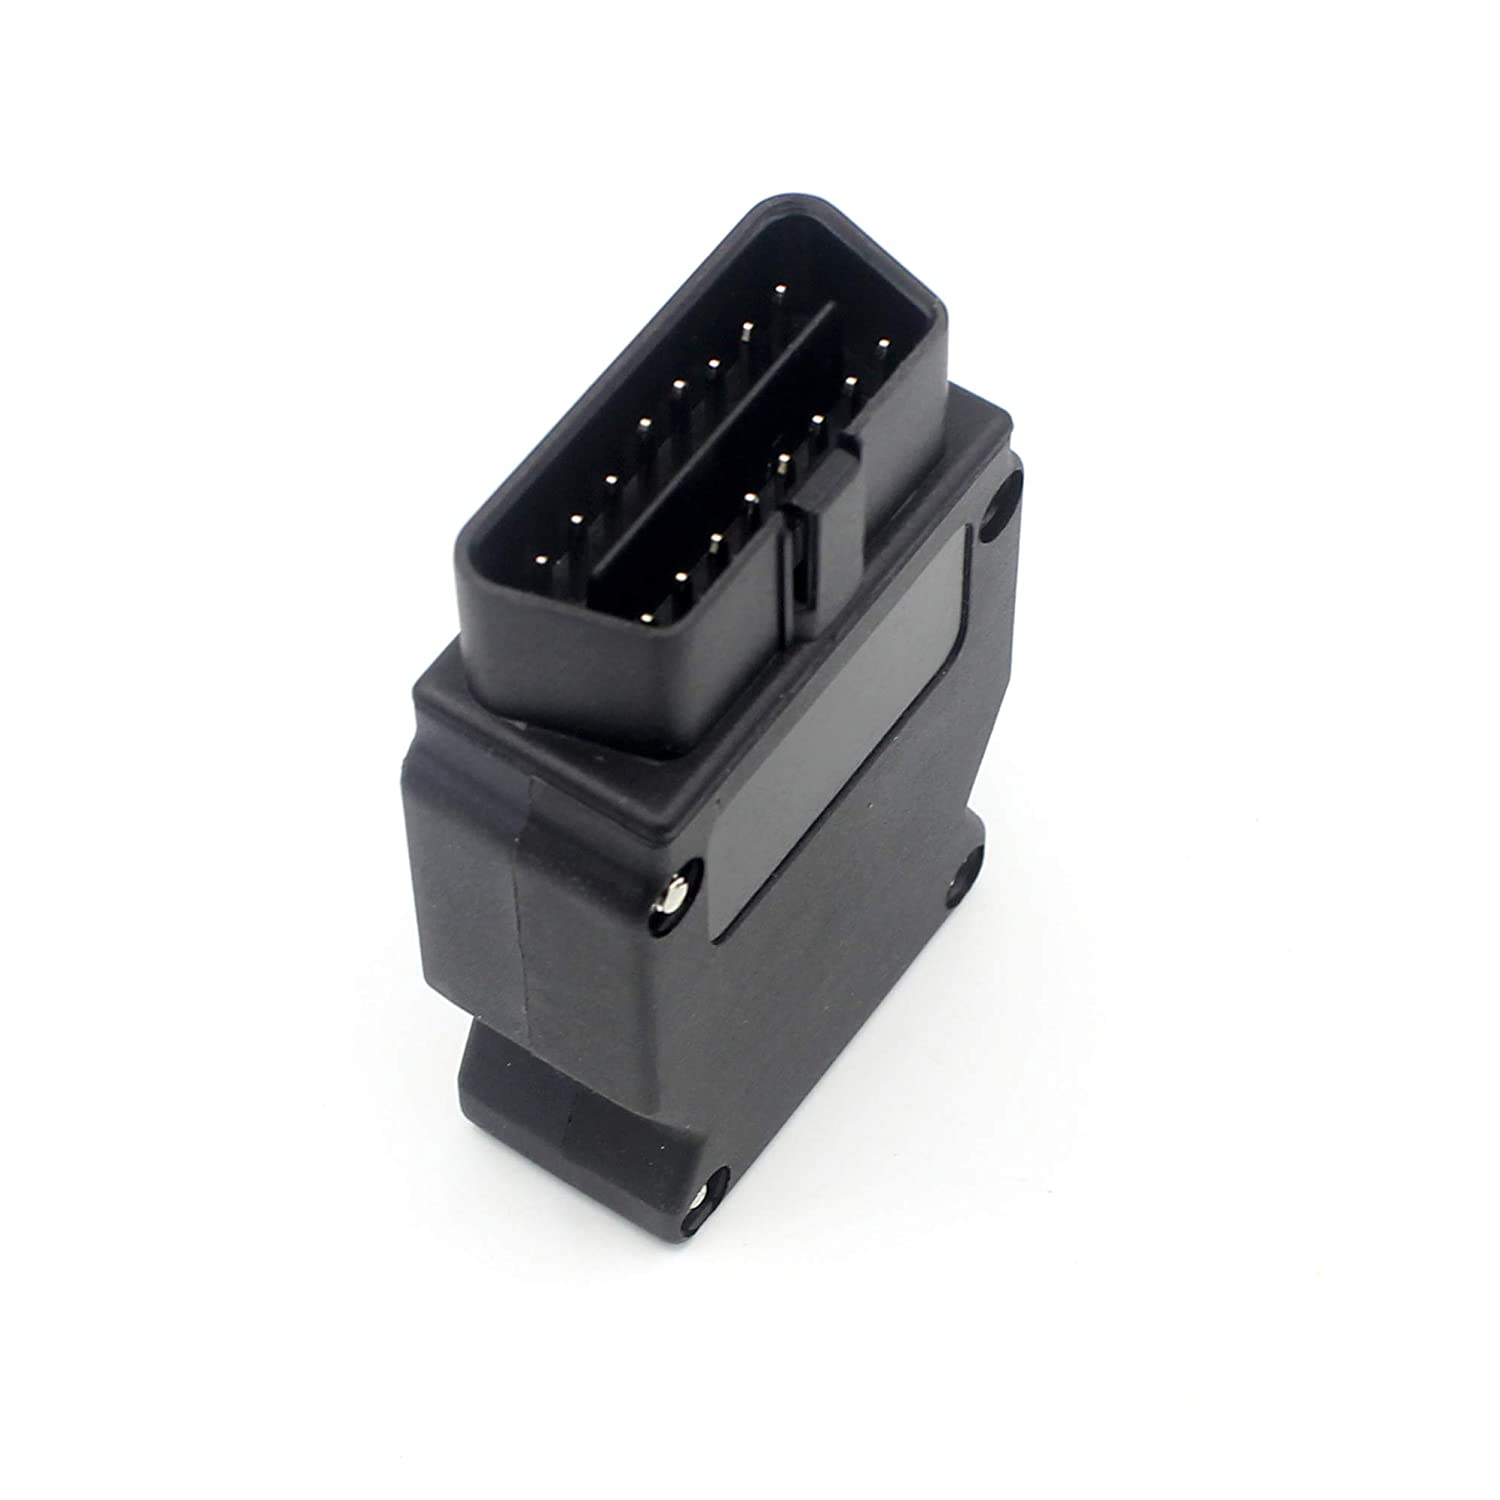 LoongGate ENET Ethernet an OBD2 16-Pin-Schnittstellenadapter f/ür BMW E-SYS ICOM-Codierdiagnose der E-SYS-Serie der E-SYS und E-Serie der sp/äten E-Serie